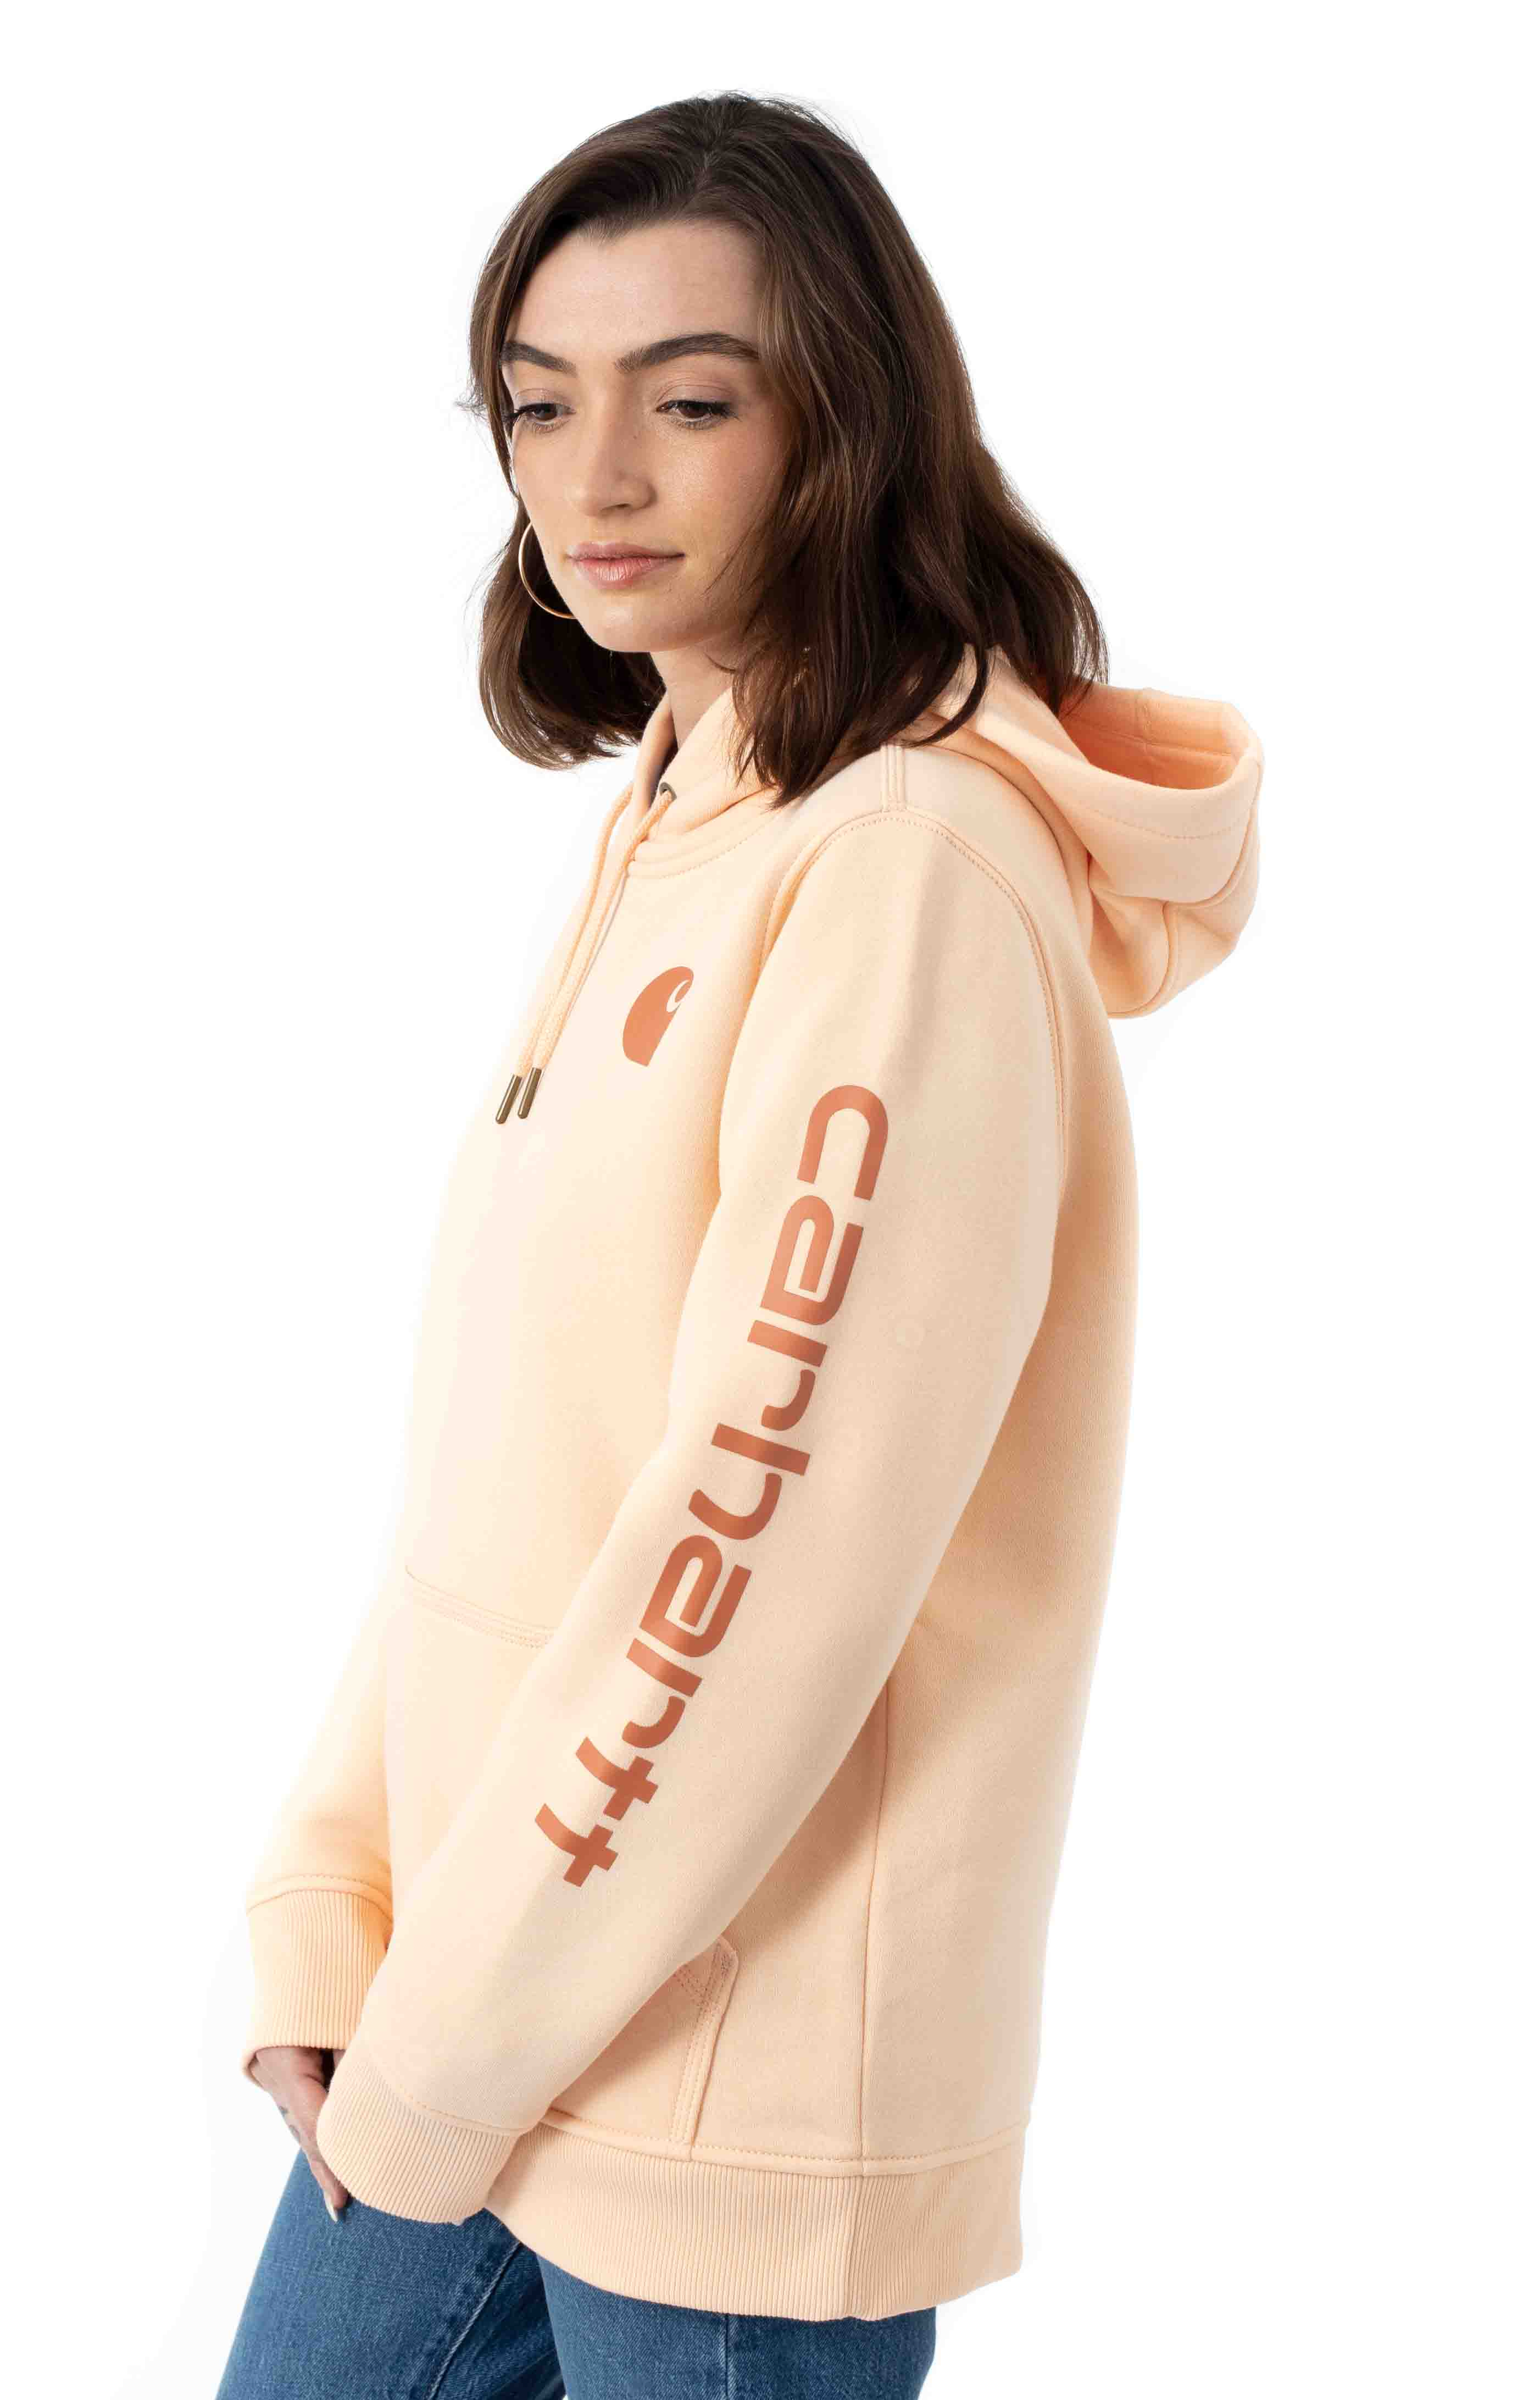 (102791) Clarksburg Graphic Sleeve Hoodie - Cantaloupe 2